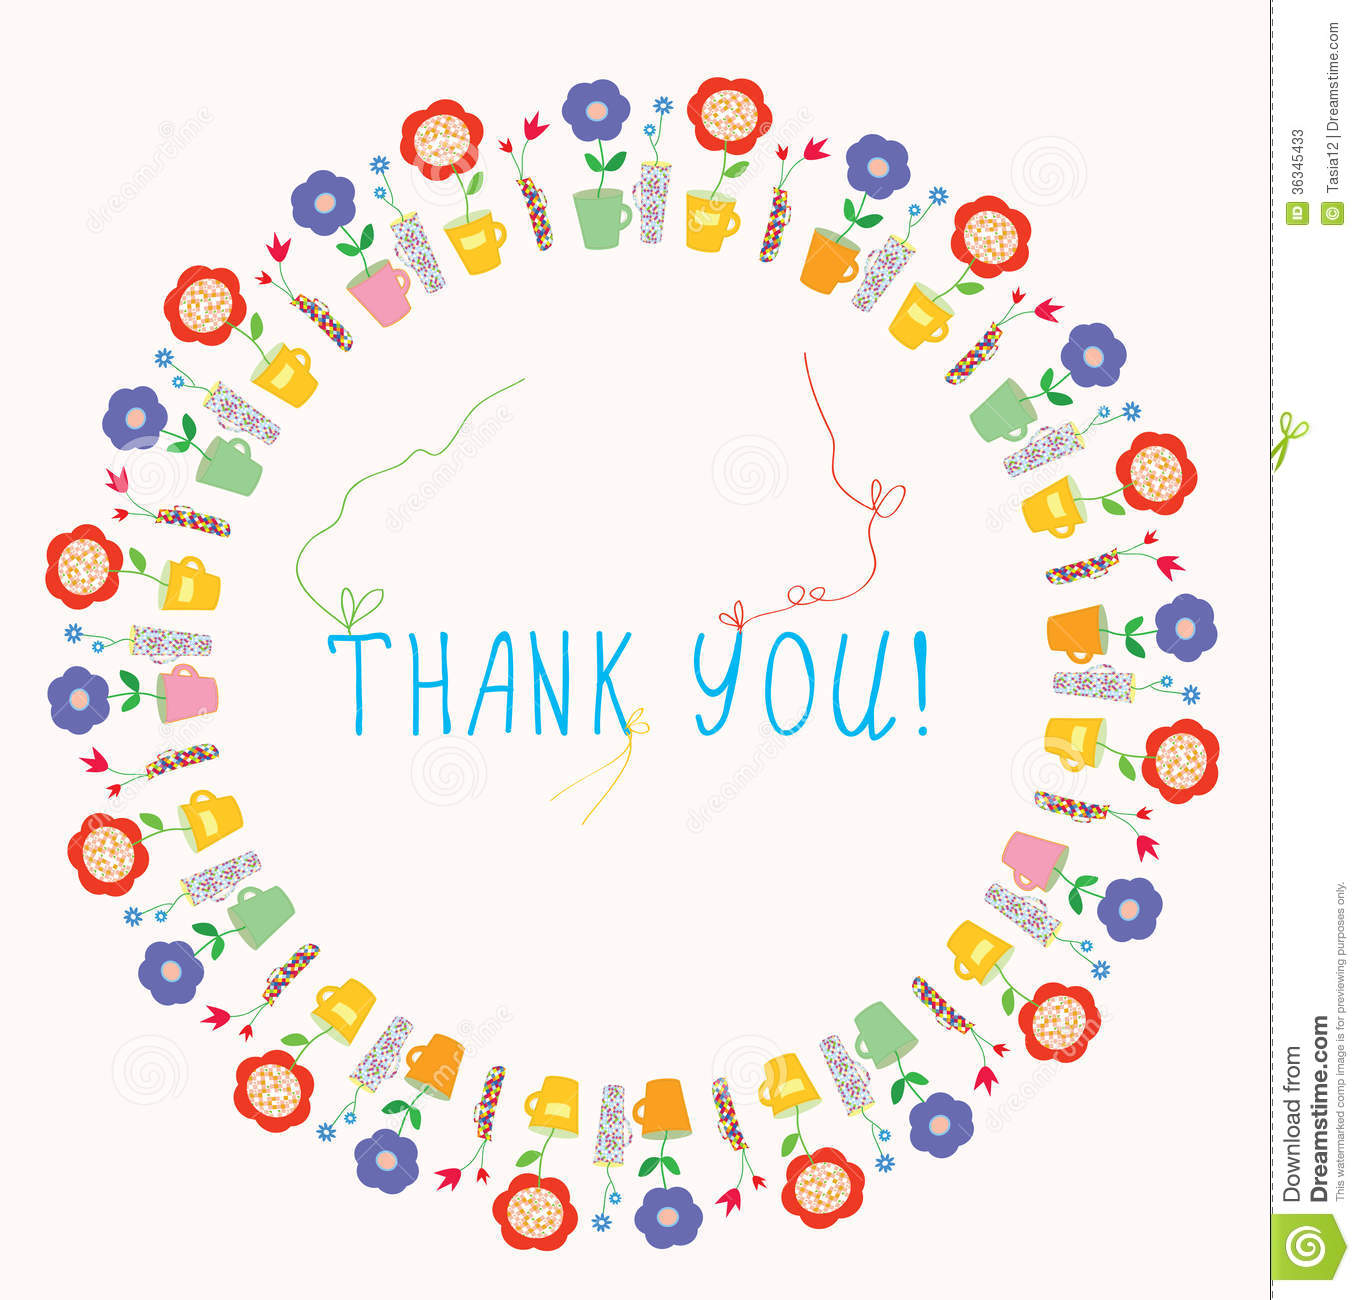 Thank you greeting card stock vector. Illustration of baby